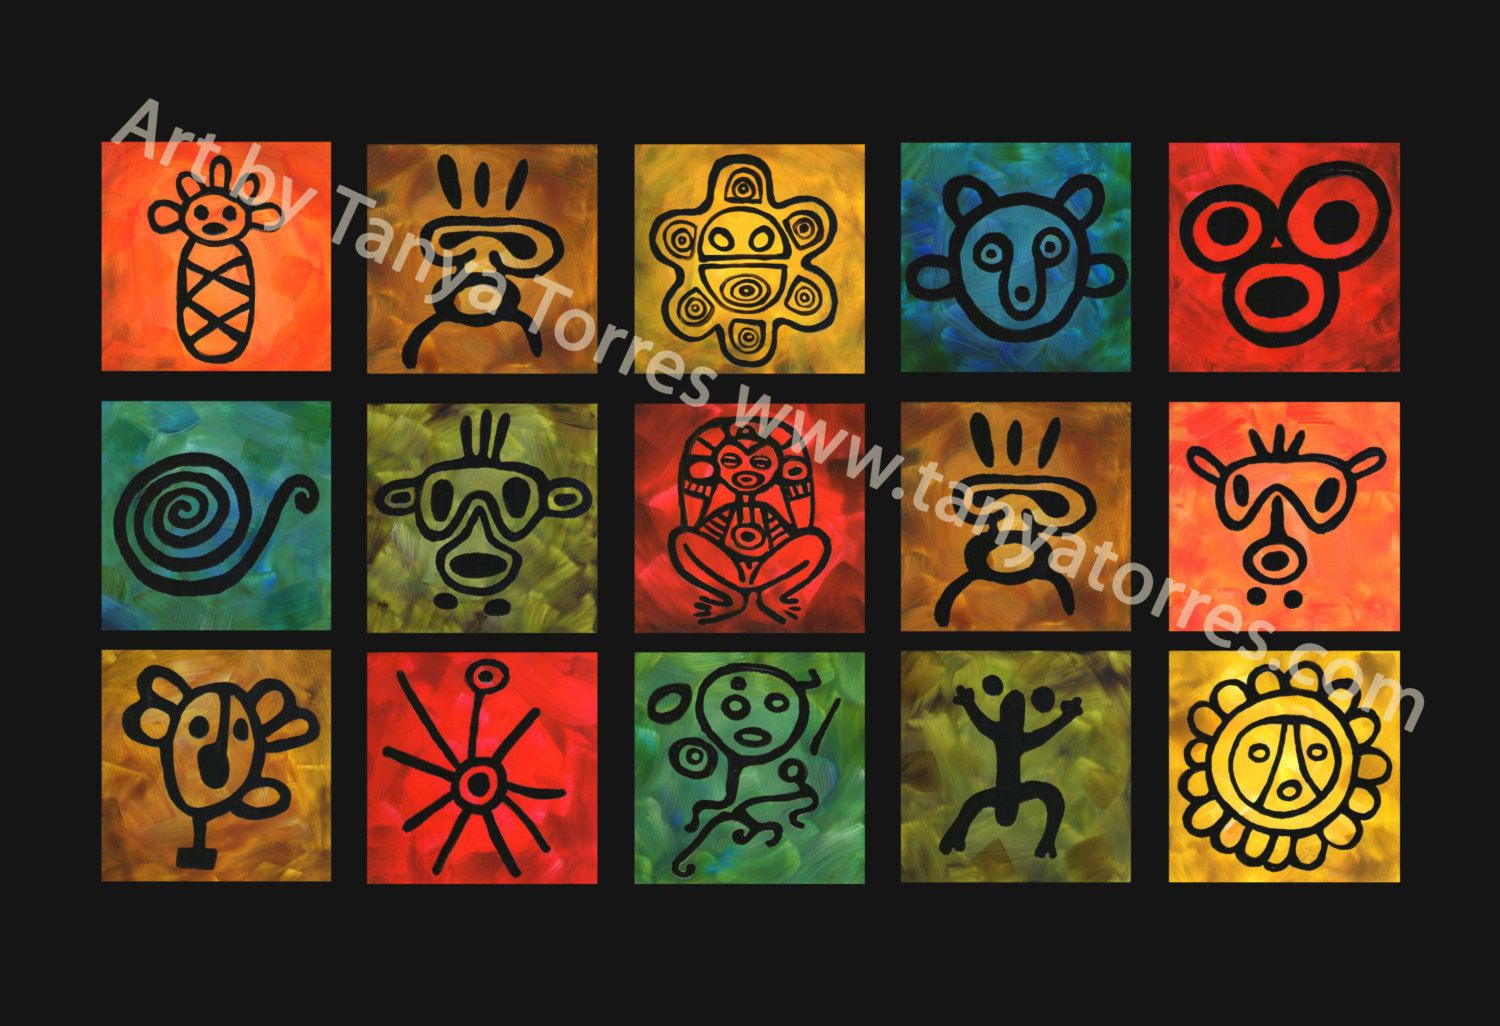 Tano symbols large matted print by tanyaetorres on etsy puerto tano symbols large matted print by tanyaetorres on etsy taino tattoosindian buycottarizona Image collections